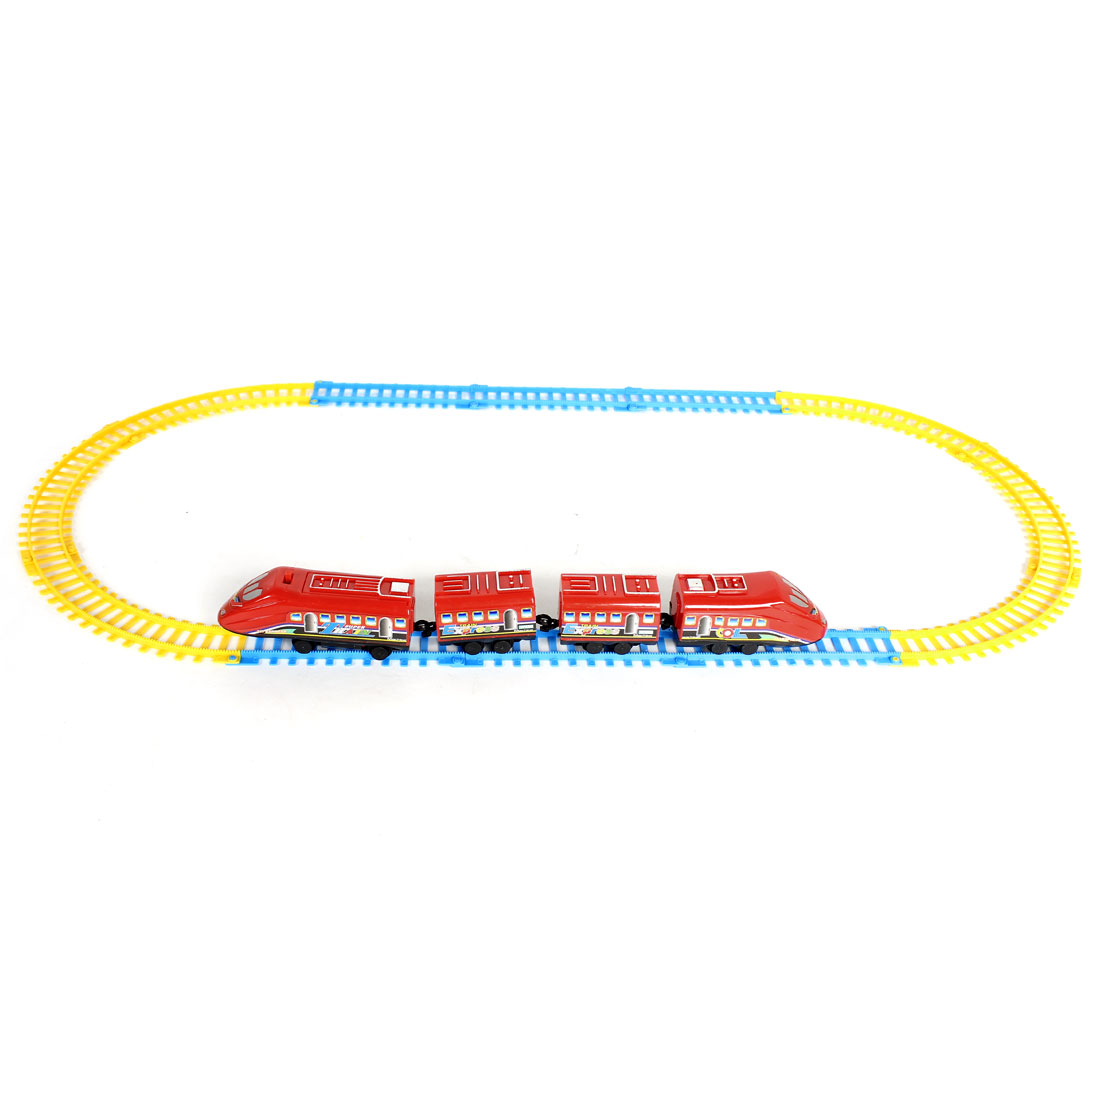 Orbital Battery Operate Train Track Toy Set for Children